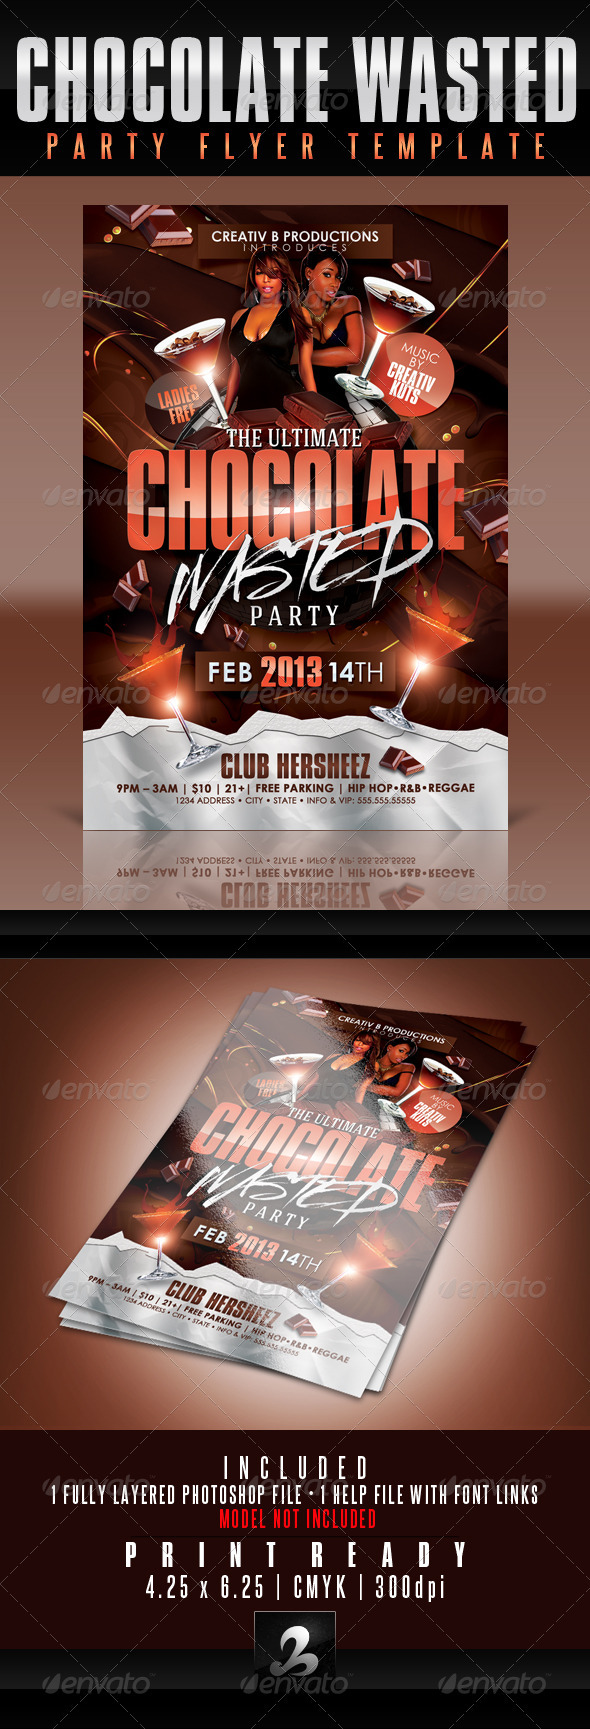 GraphicRiver Chocolate Wasted Party Flyer Template 3802708